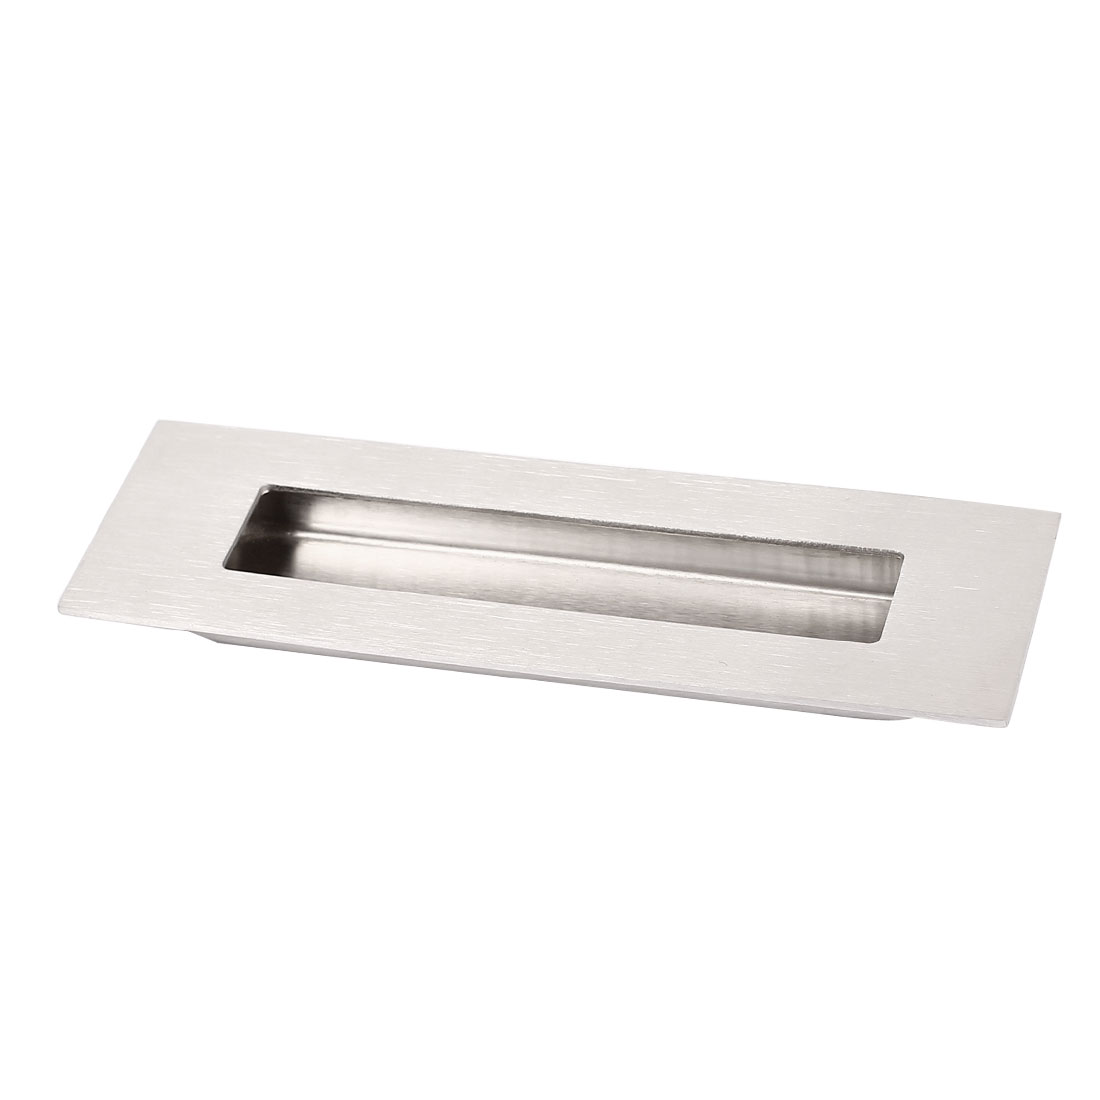 150mmx50mm Polished Stainless Steel Rectangular Flush Recessed Pull Door Handle